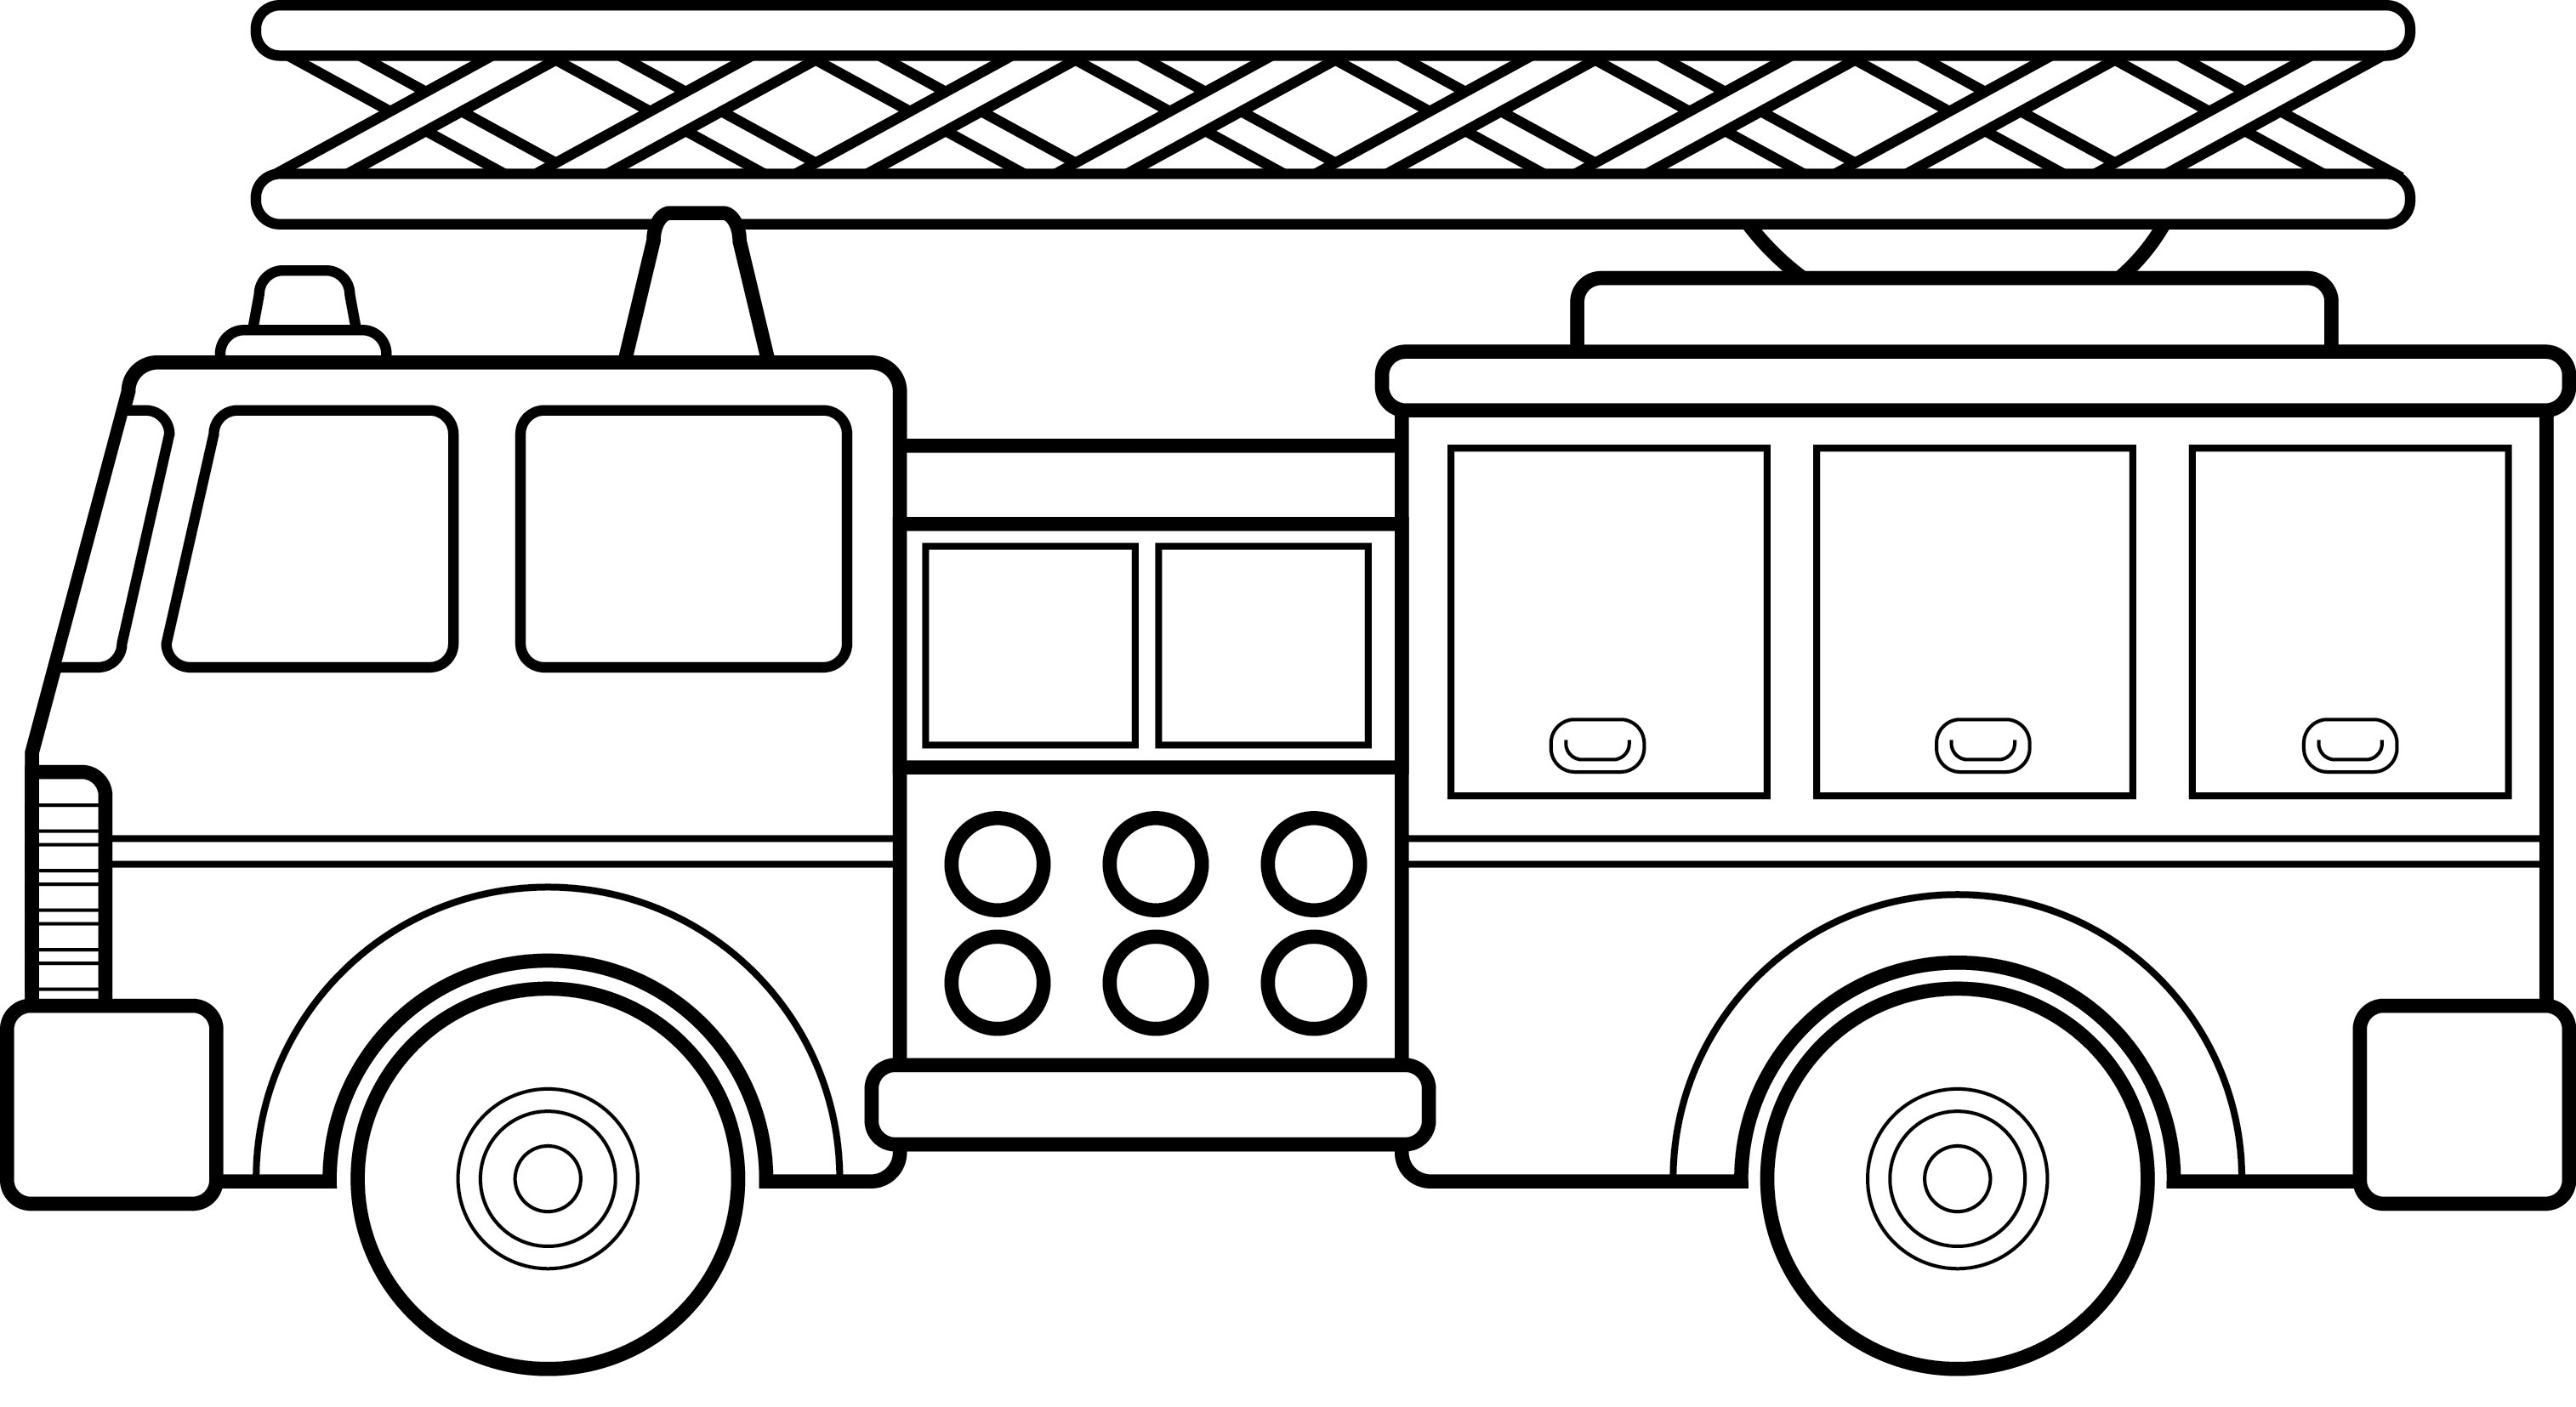 Fire Truck Cars And Trucks Clip Art Blac-Fire truck cars and trucks clip art black and white car 2 top-6